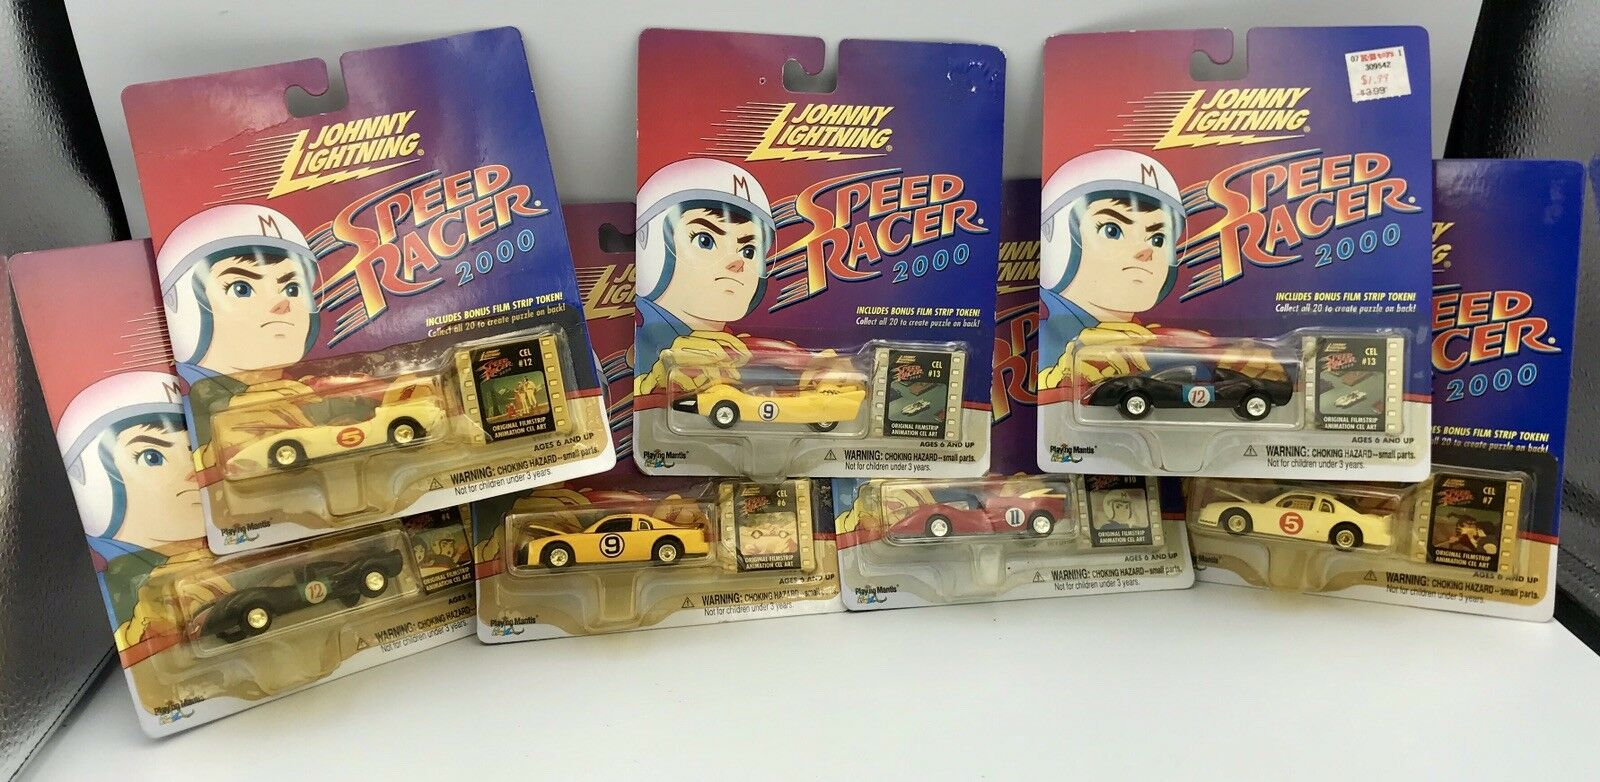 Johnny lightning 1   64 speed racer 2000 (menge 7 autos - mib)